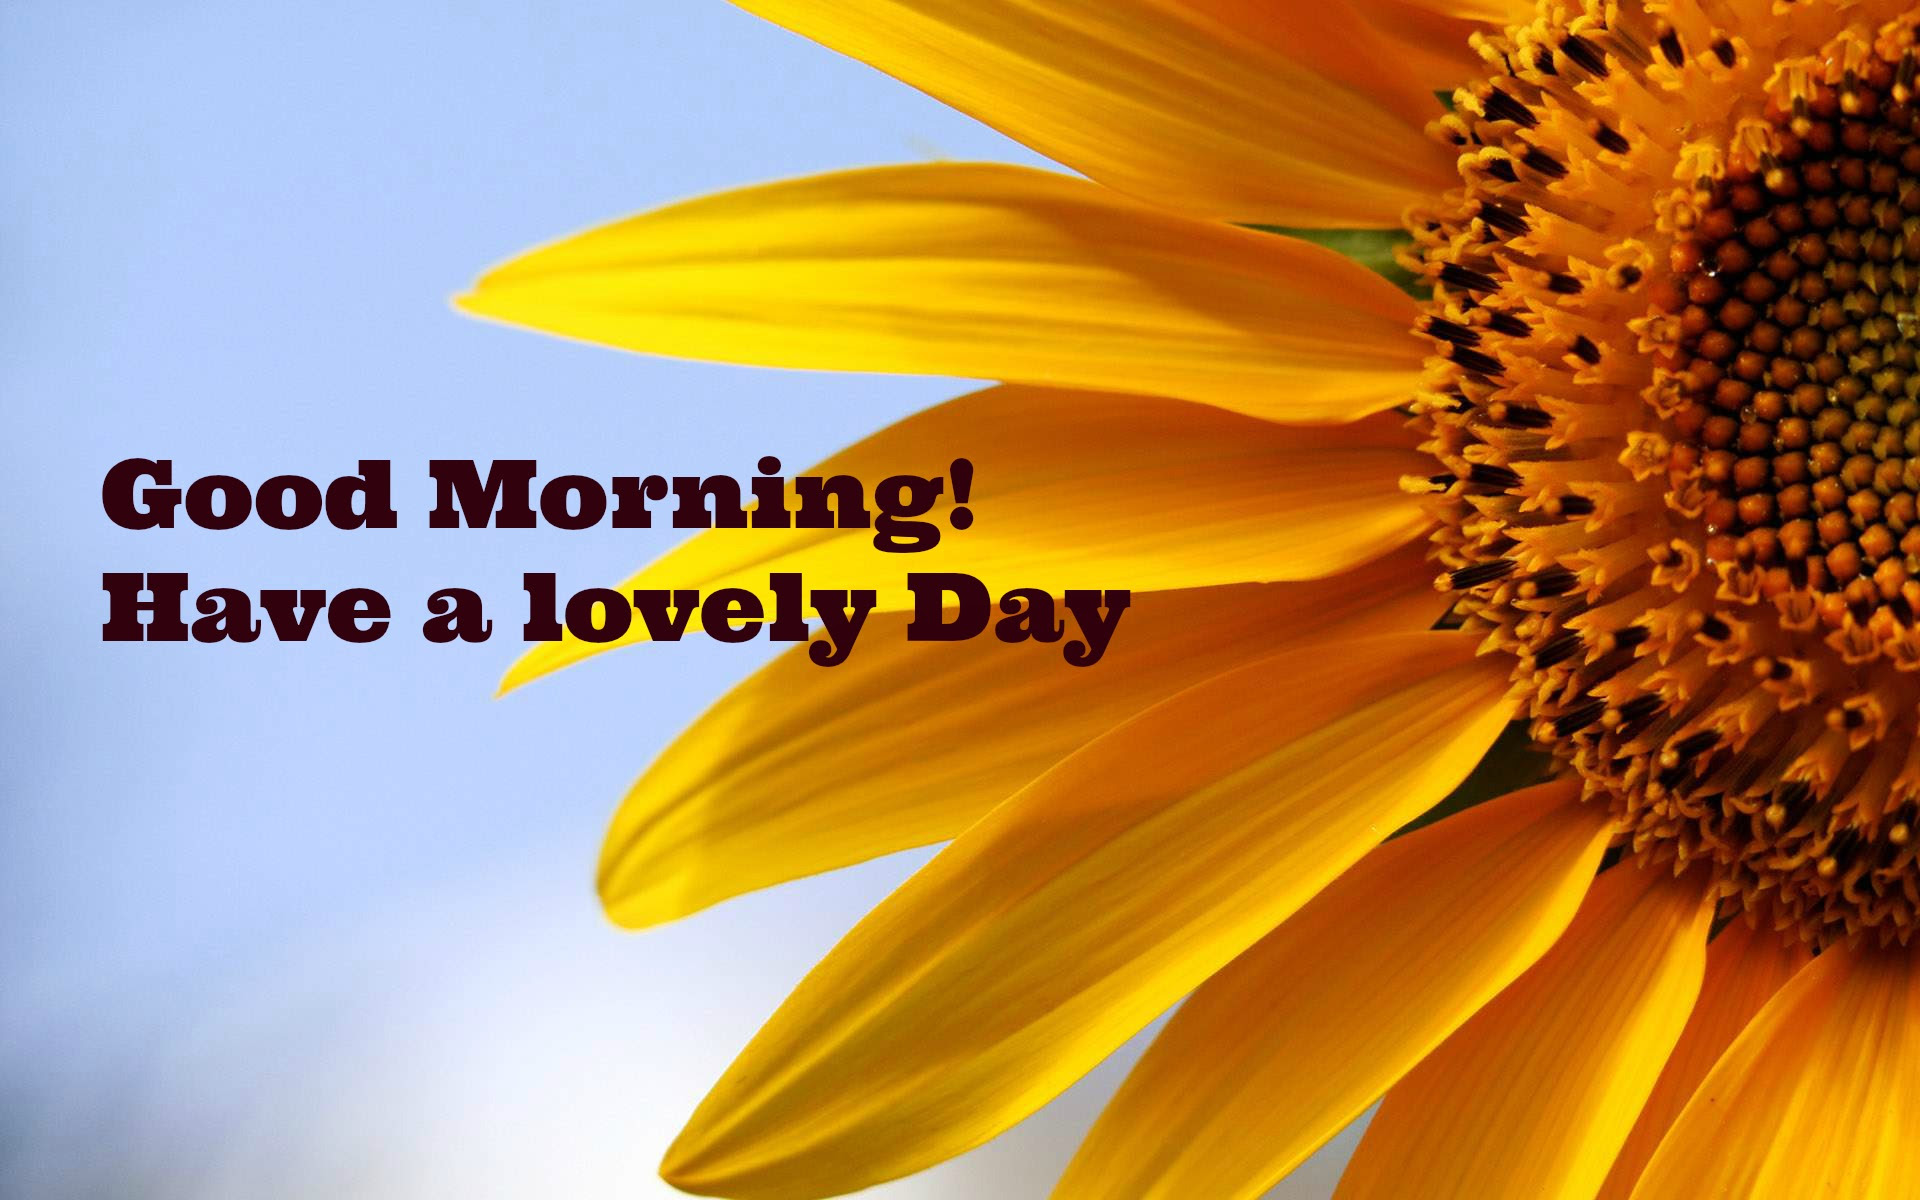 35 BEST INSPIRATIONAL MORNING QUOTES TO MAKE YOUR DAY ...